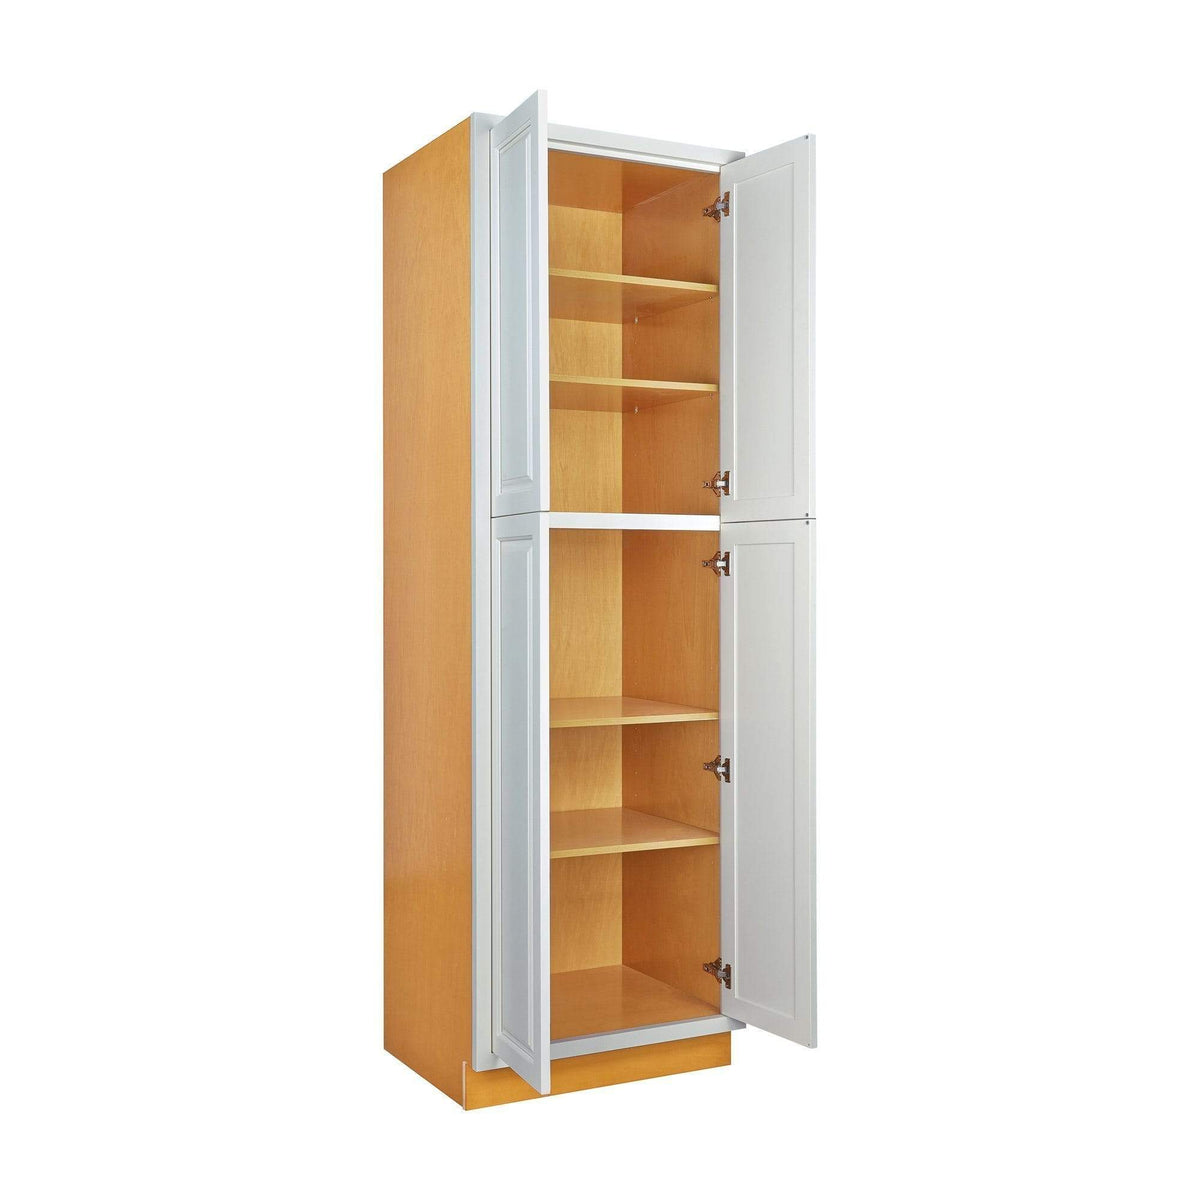 "Pantry Cabinet Pantry Vintage White Inset Raised Panel Cabinet 84"" Tall 24', 30"" & 36"" Wide Inset Kitchen Cabinets"